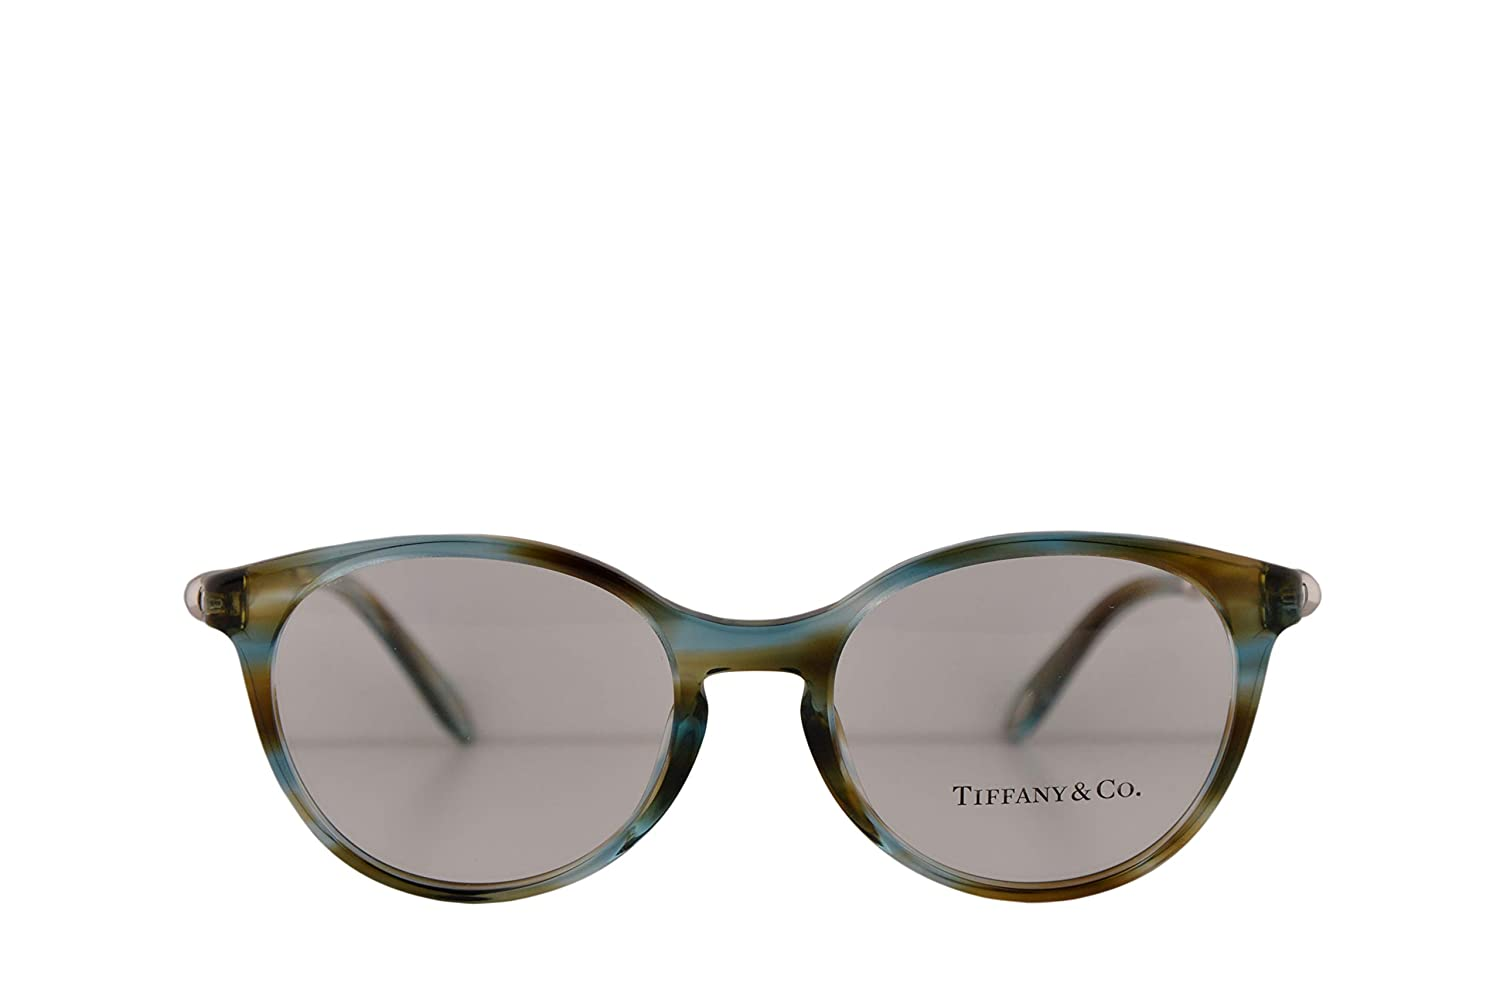 cd8b3be60d1 Amazon.com  Tiffany   Co. TF2159 Eyeglasses 49-18-140 Ocean Turquoise  w Demo Clear Lens 8124 TF 2159  Clothing